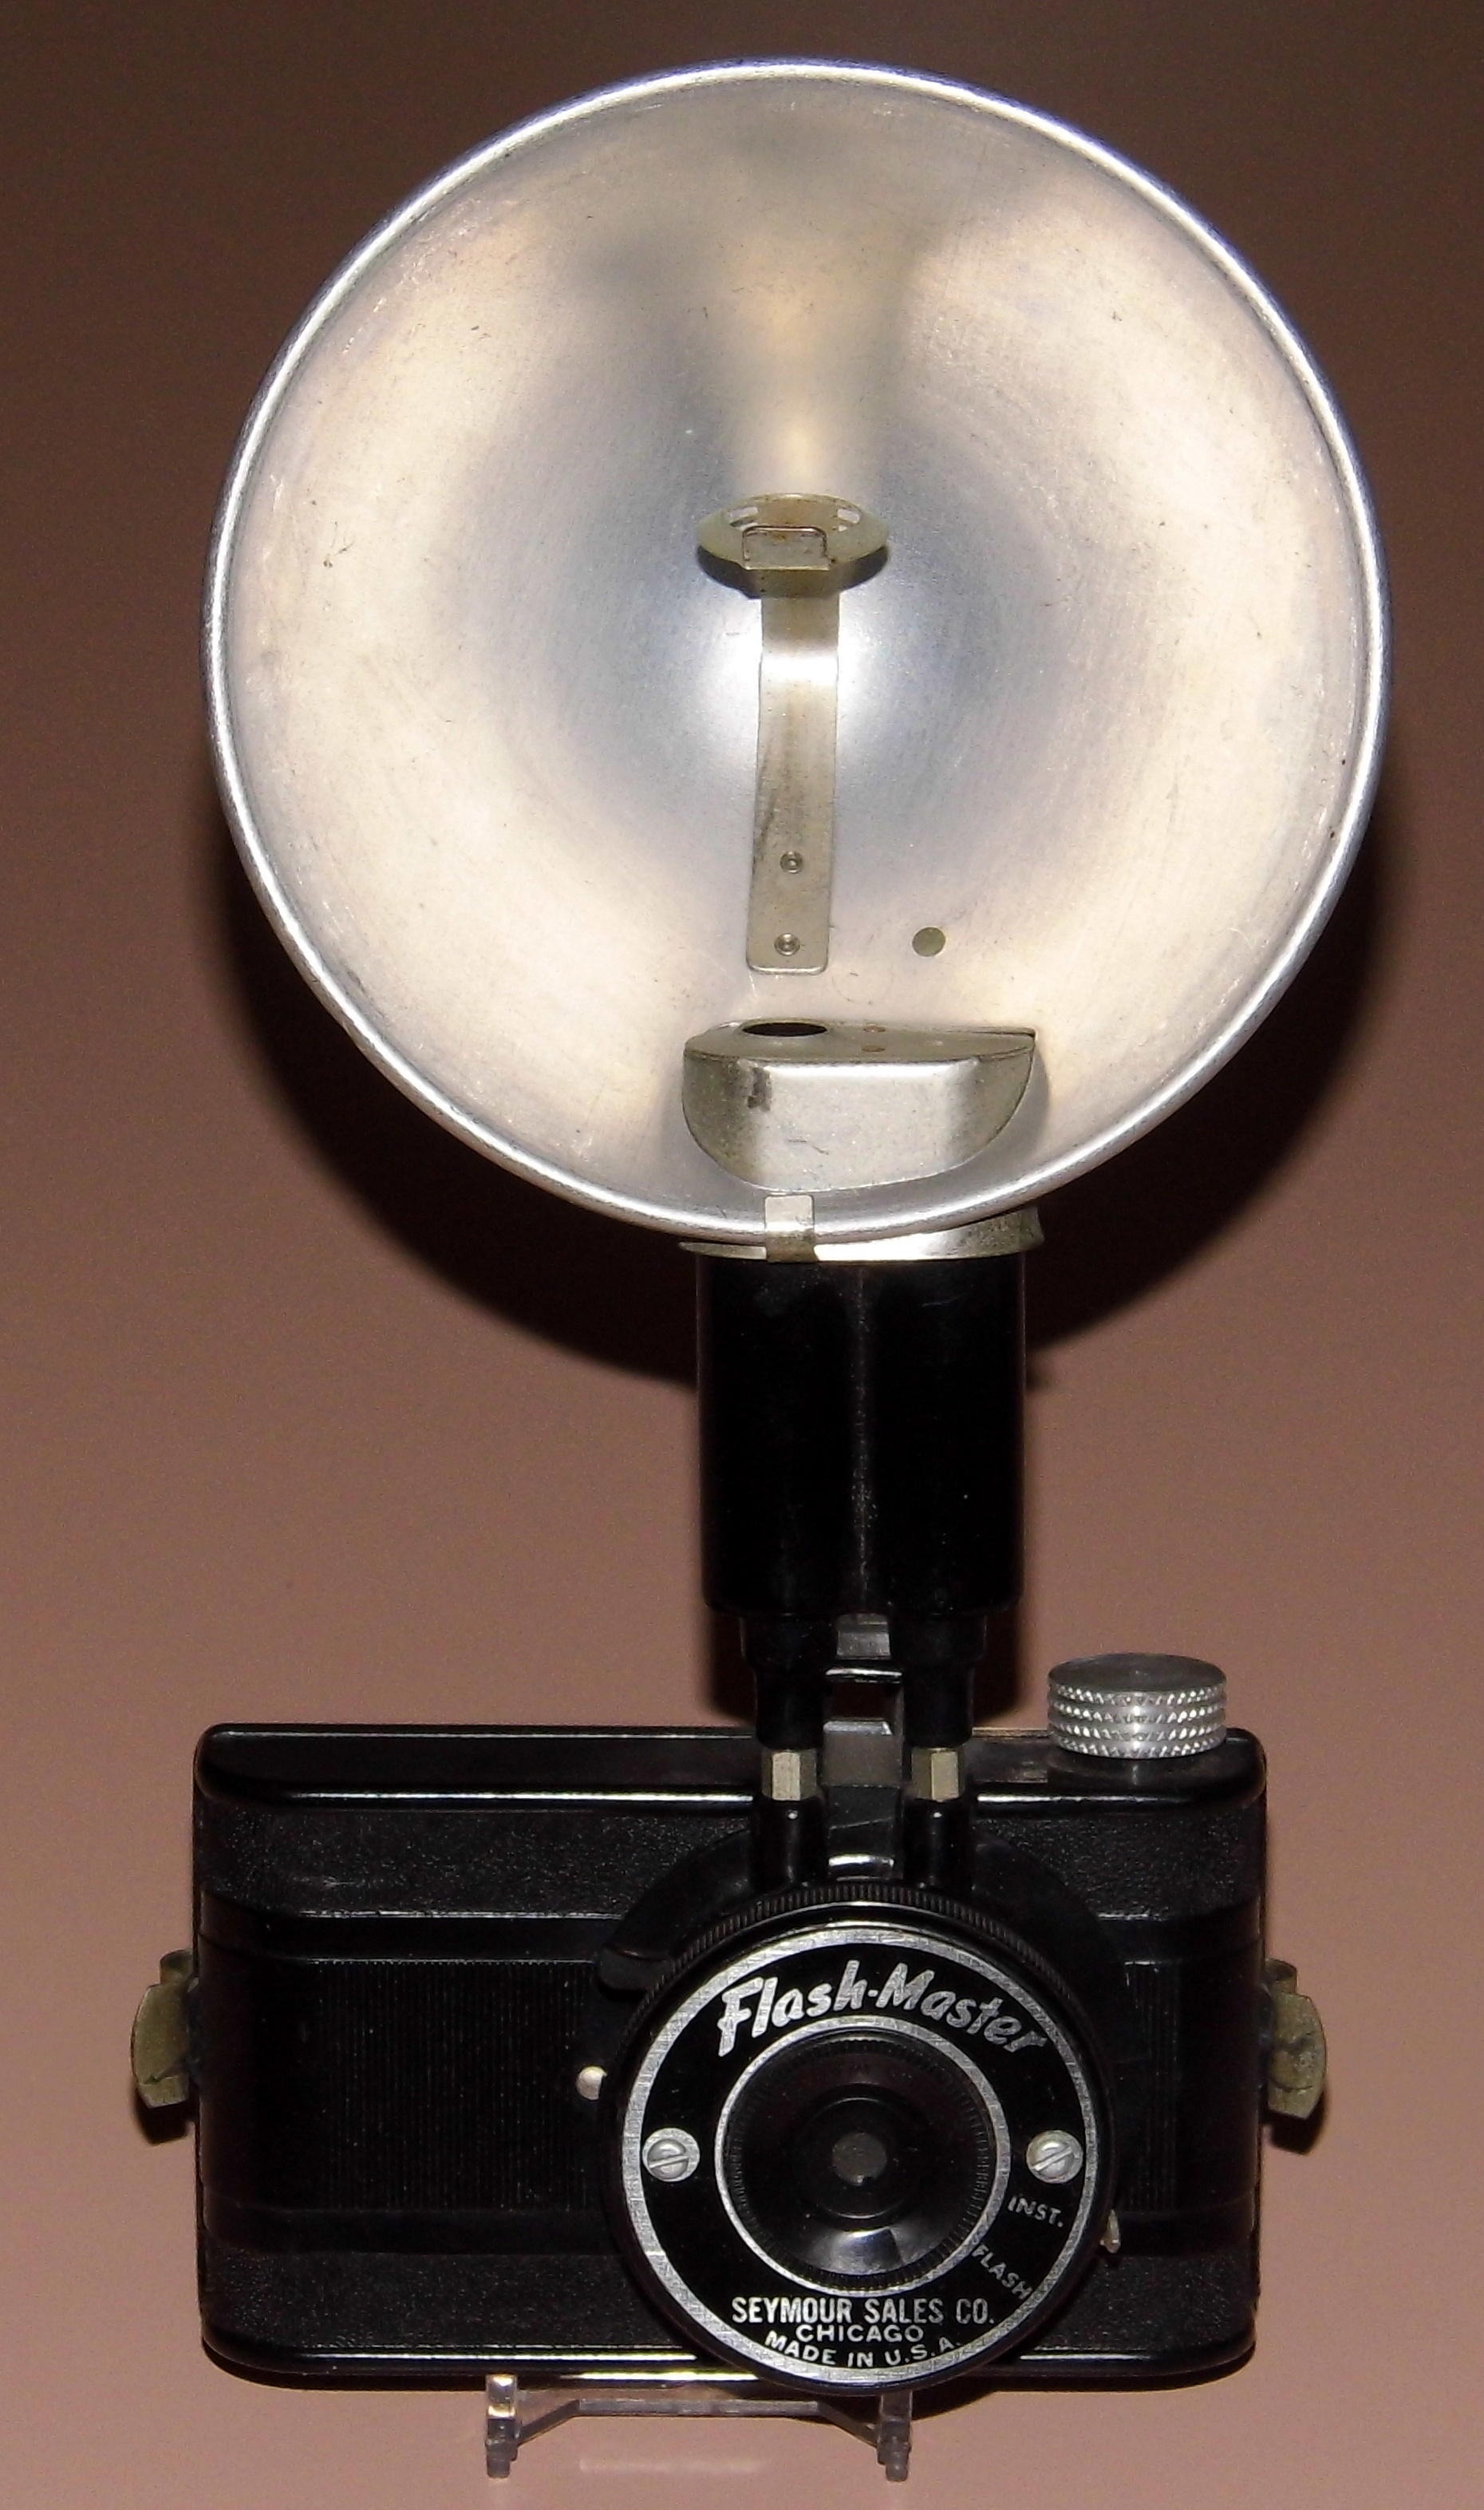 Vintage Flash-Master Camera & Flash Gun, Bakelite Viewfinder Camera Sold By Seymour Sales Co., Chicago, Uses 127 Film (13521836904)